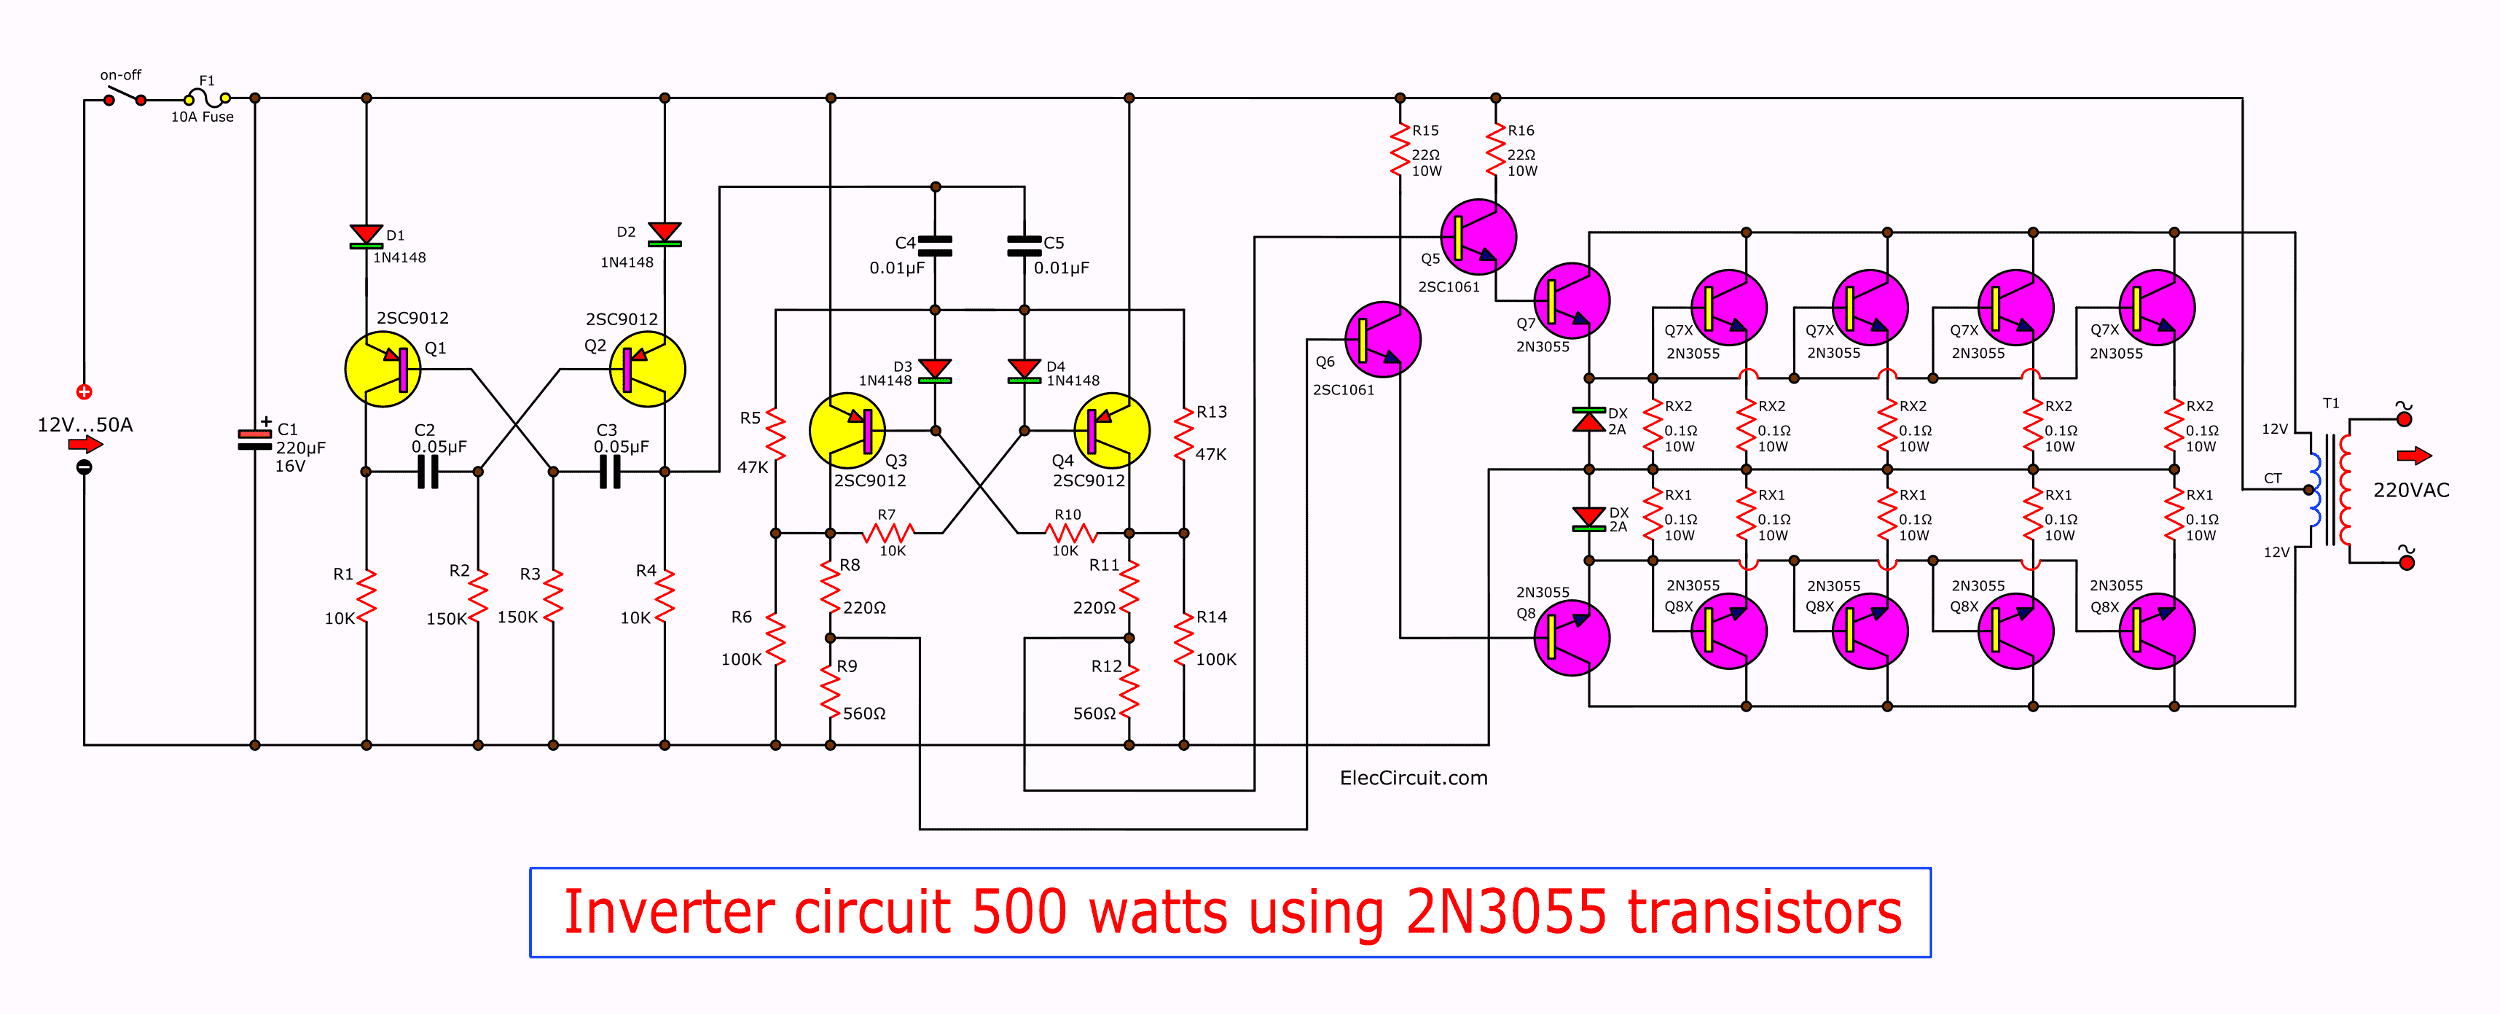 Igbt Inverter Schematic Free Download Wiring Diagram Welder Images Gallery I M Yahica 300w Circuit Rh Codecwired Blogspot Com